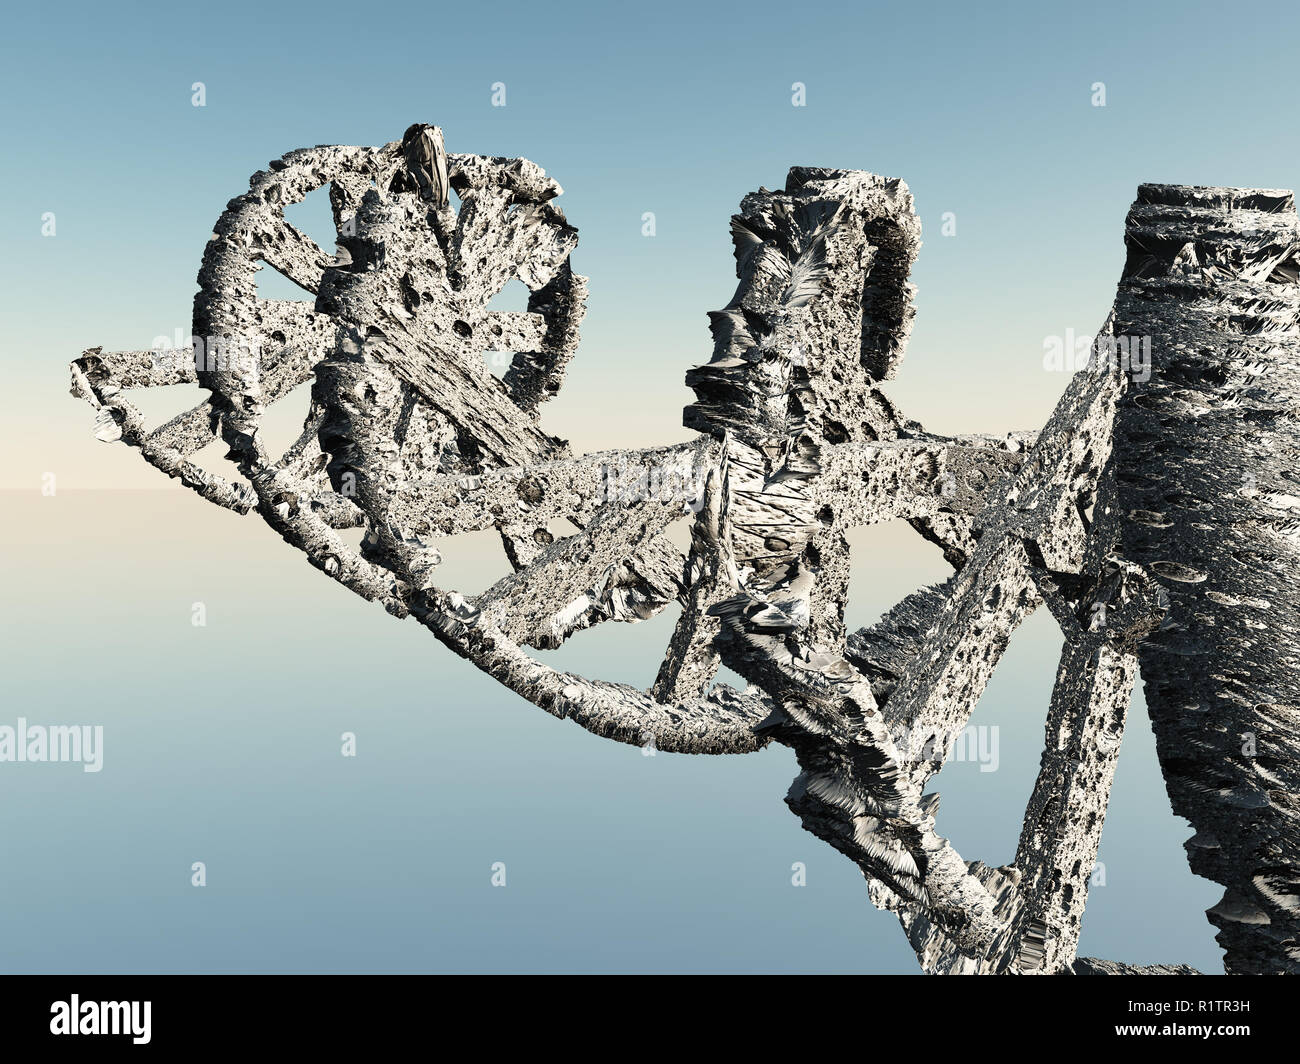 DNA chain made of bone or porous material - Stock Image